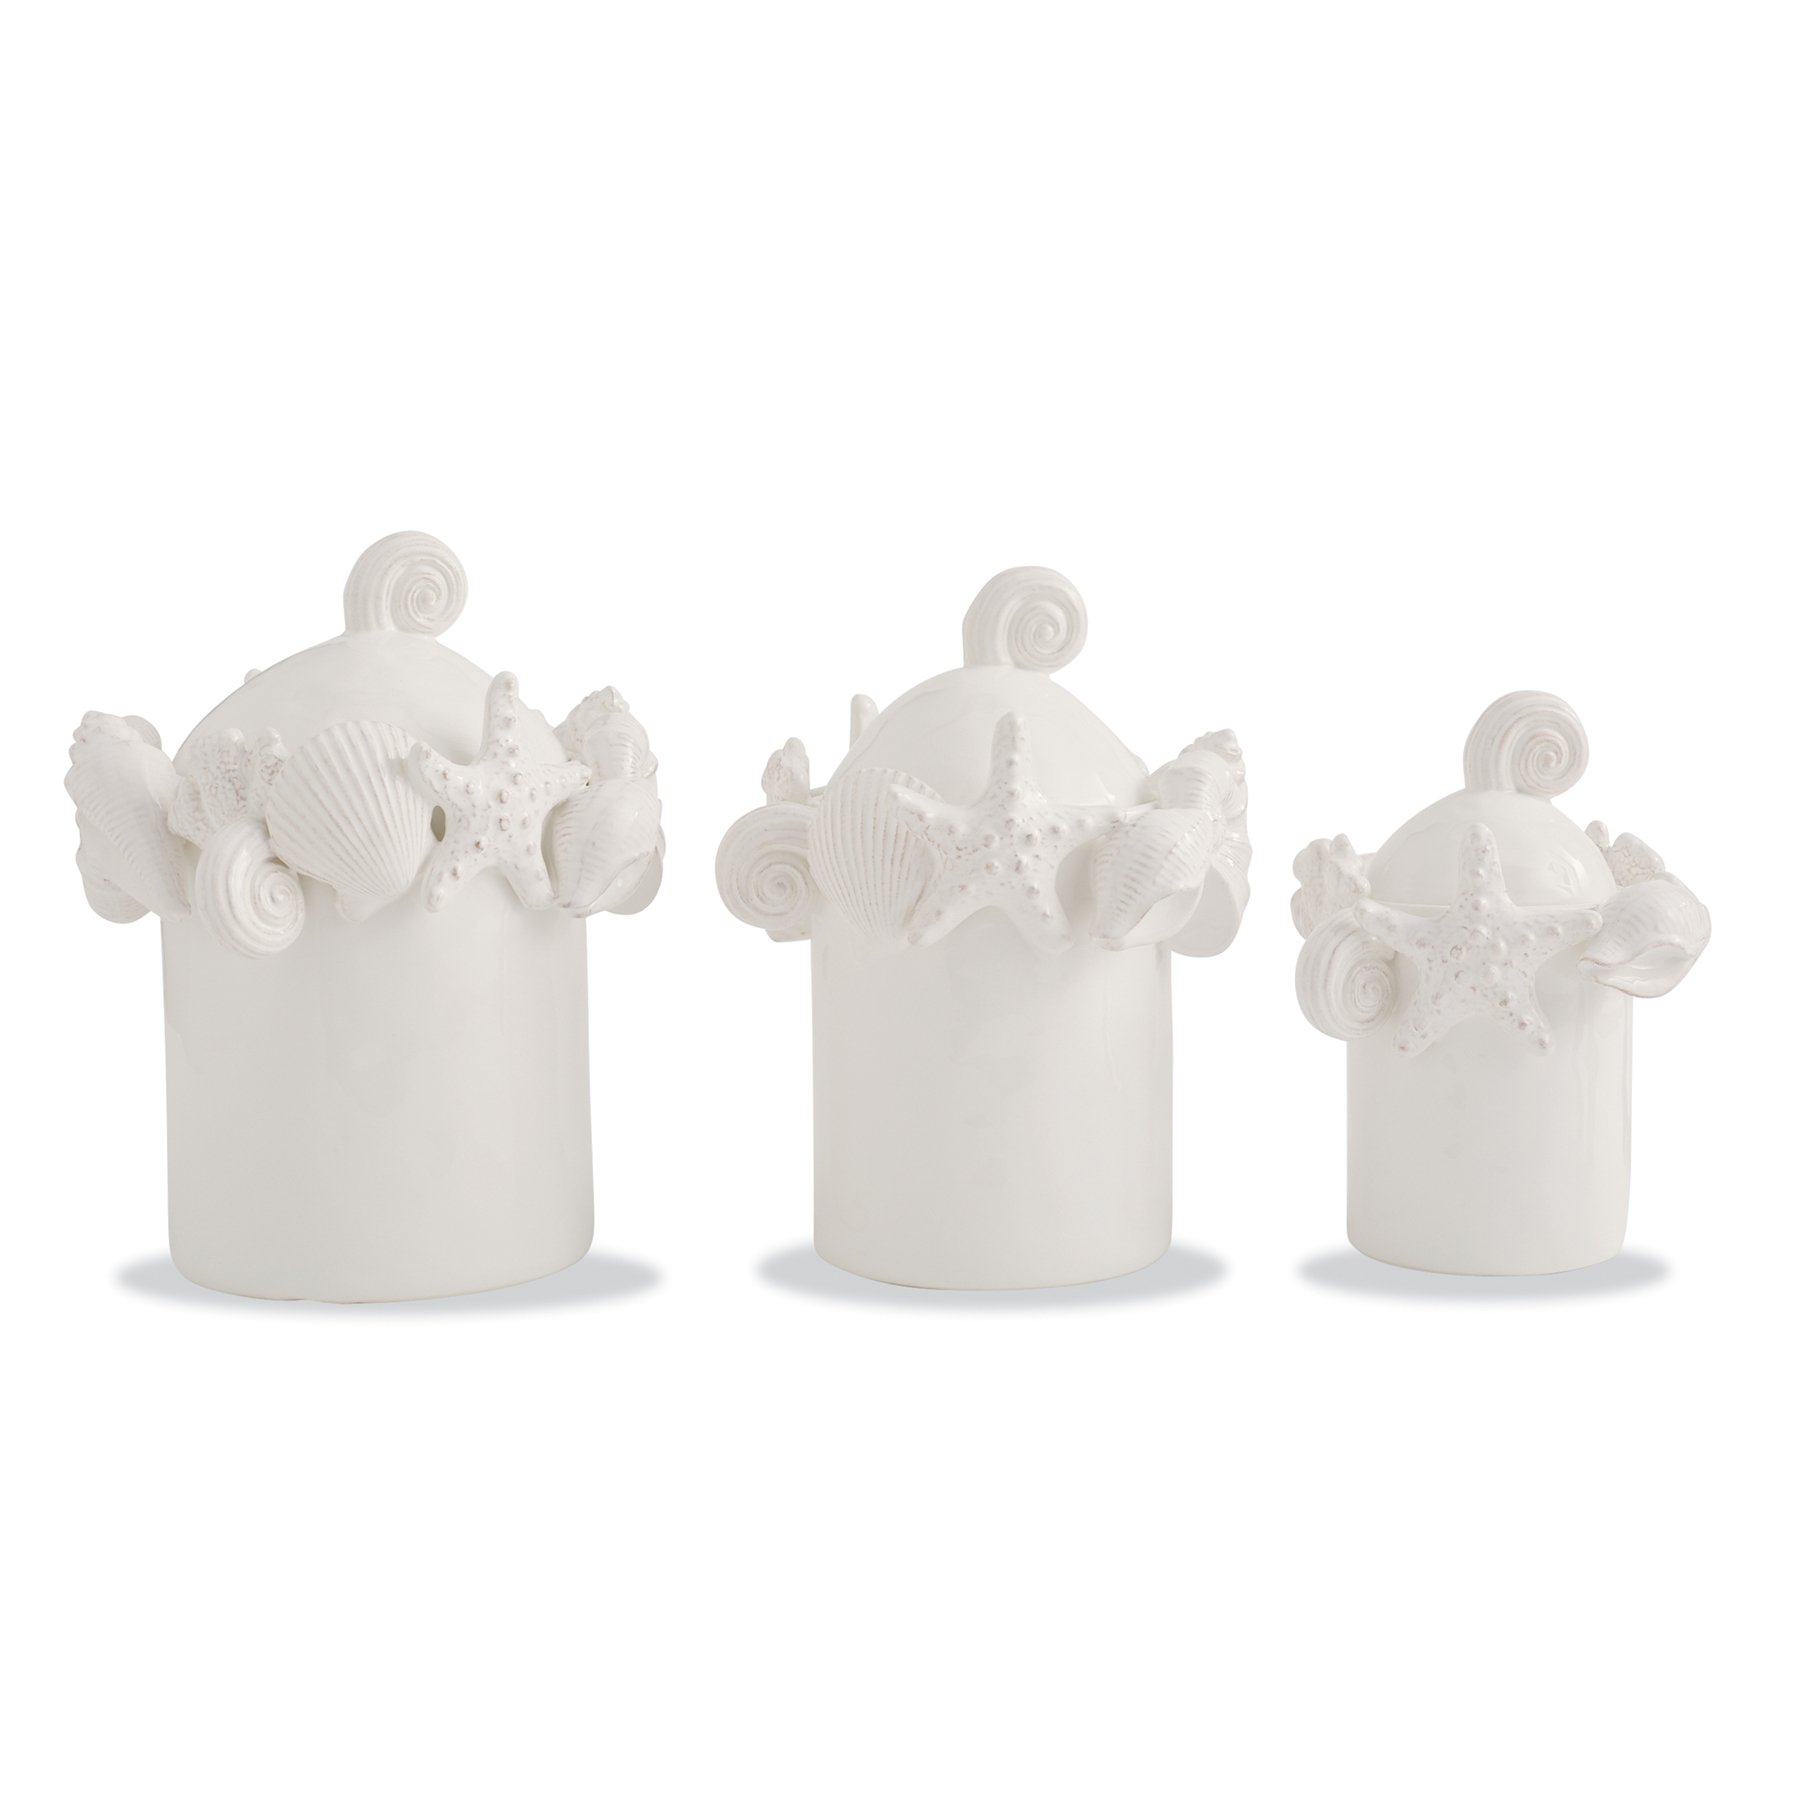 Mud Pie 4931009 Encrusted Shell Canister Set of 3, White